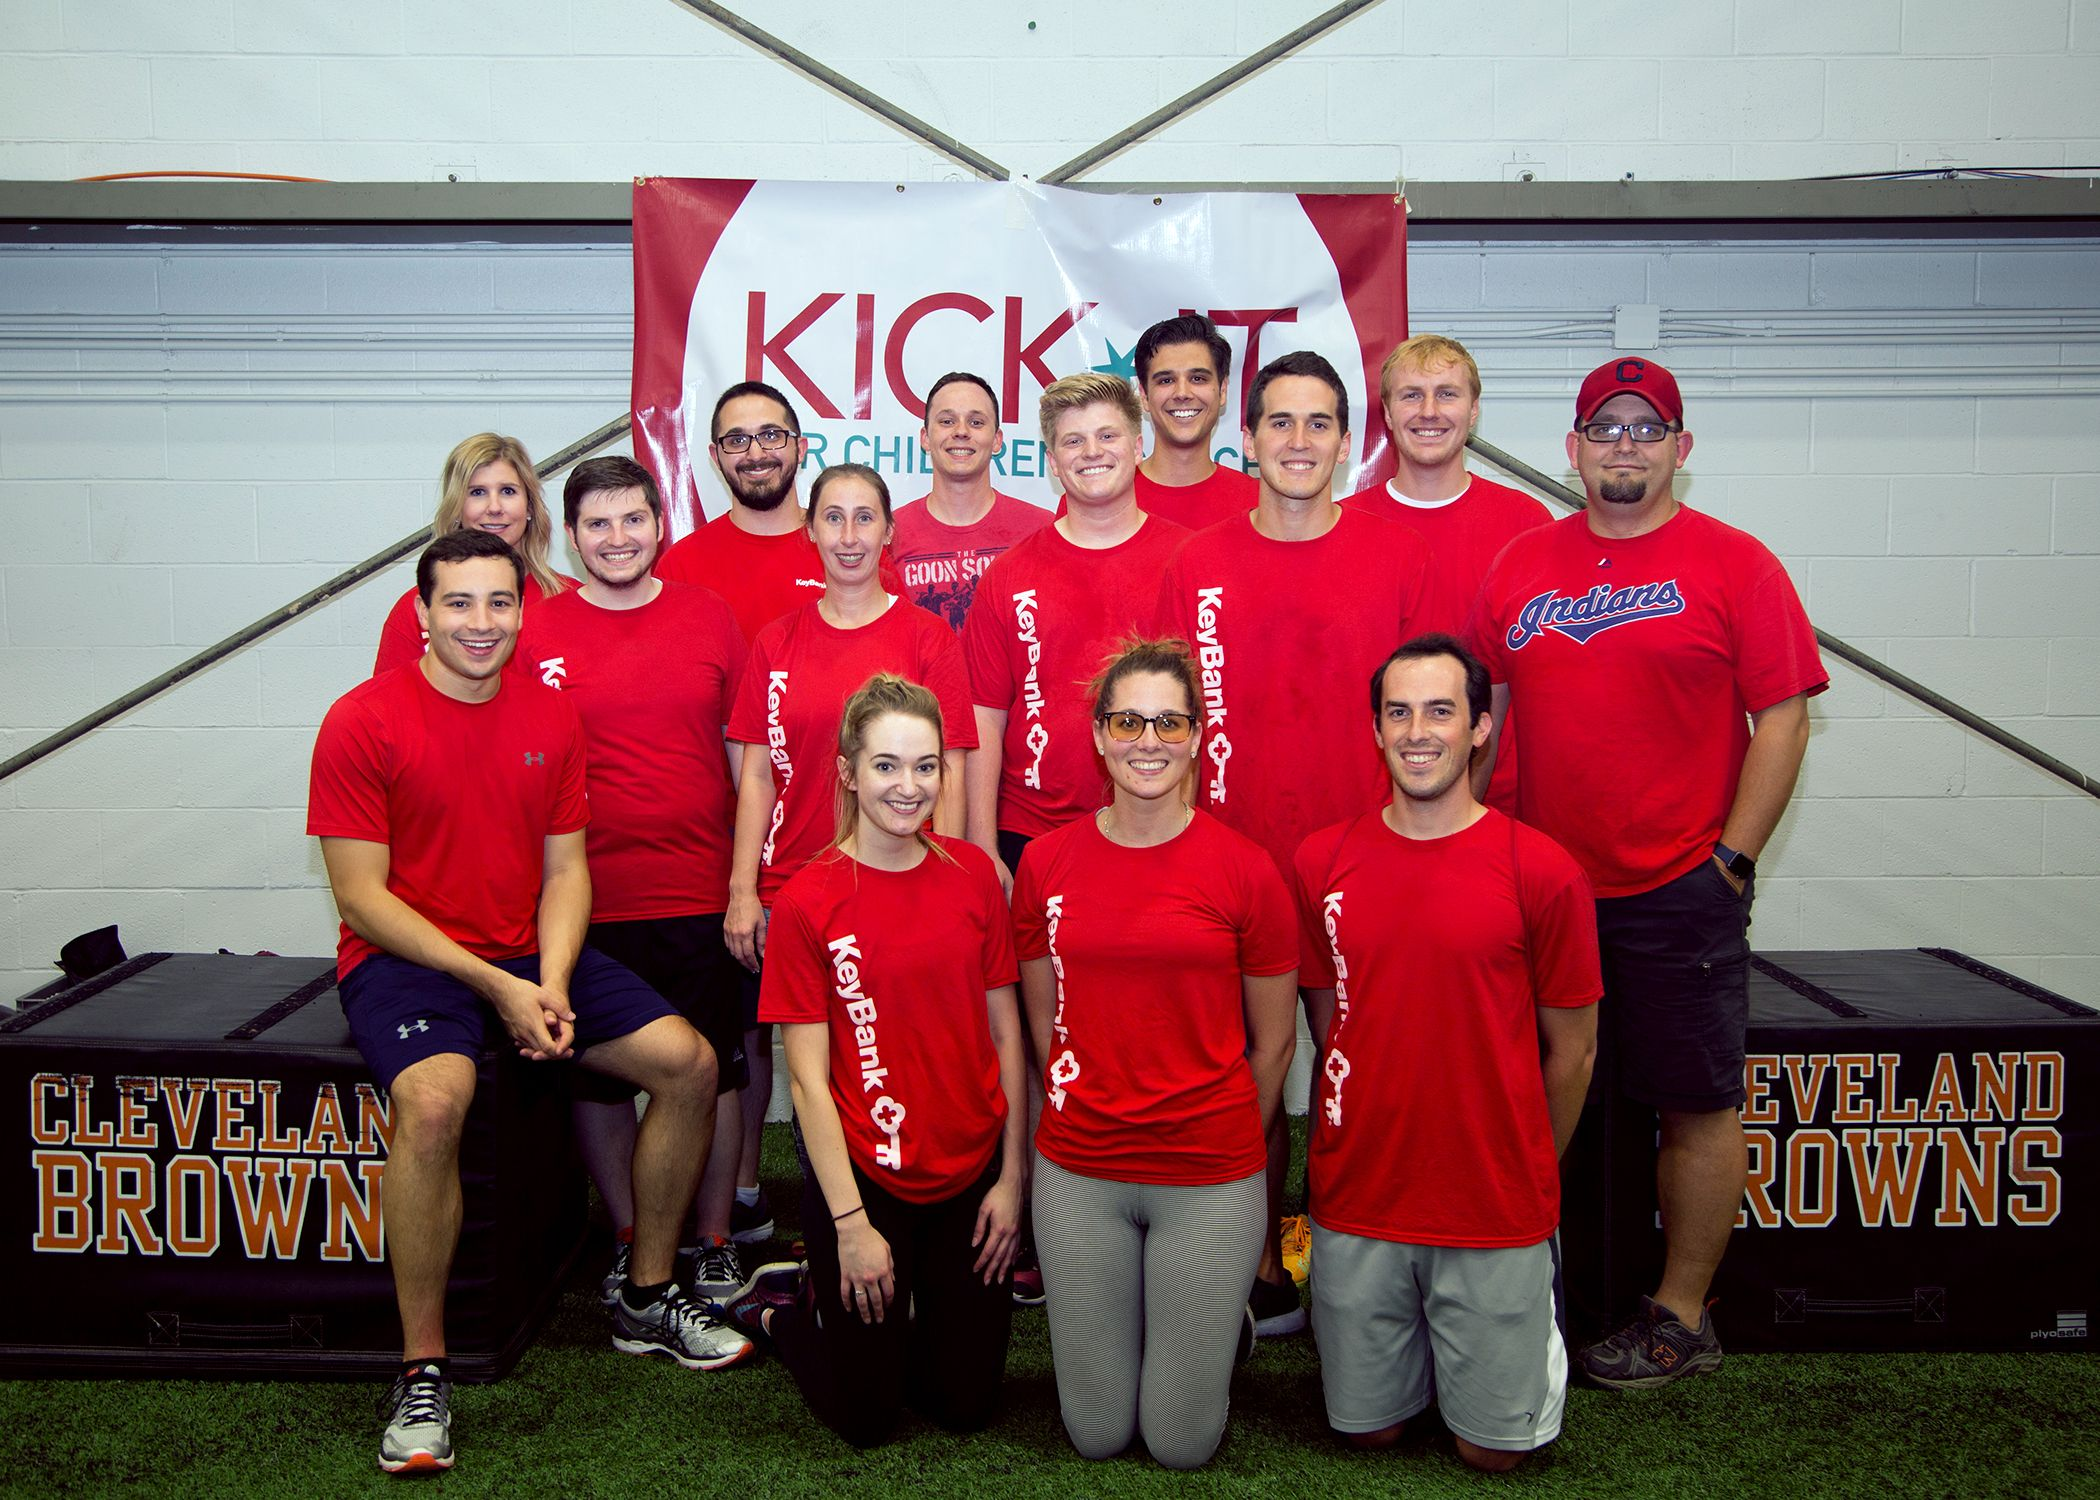 keybank kickball tournament